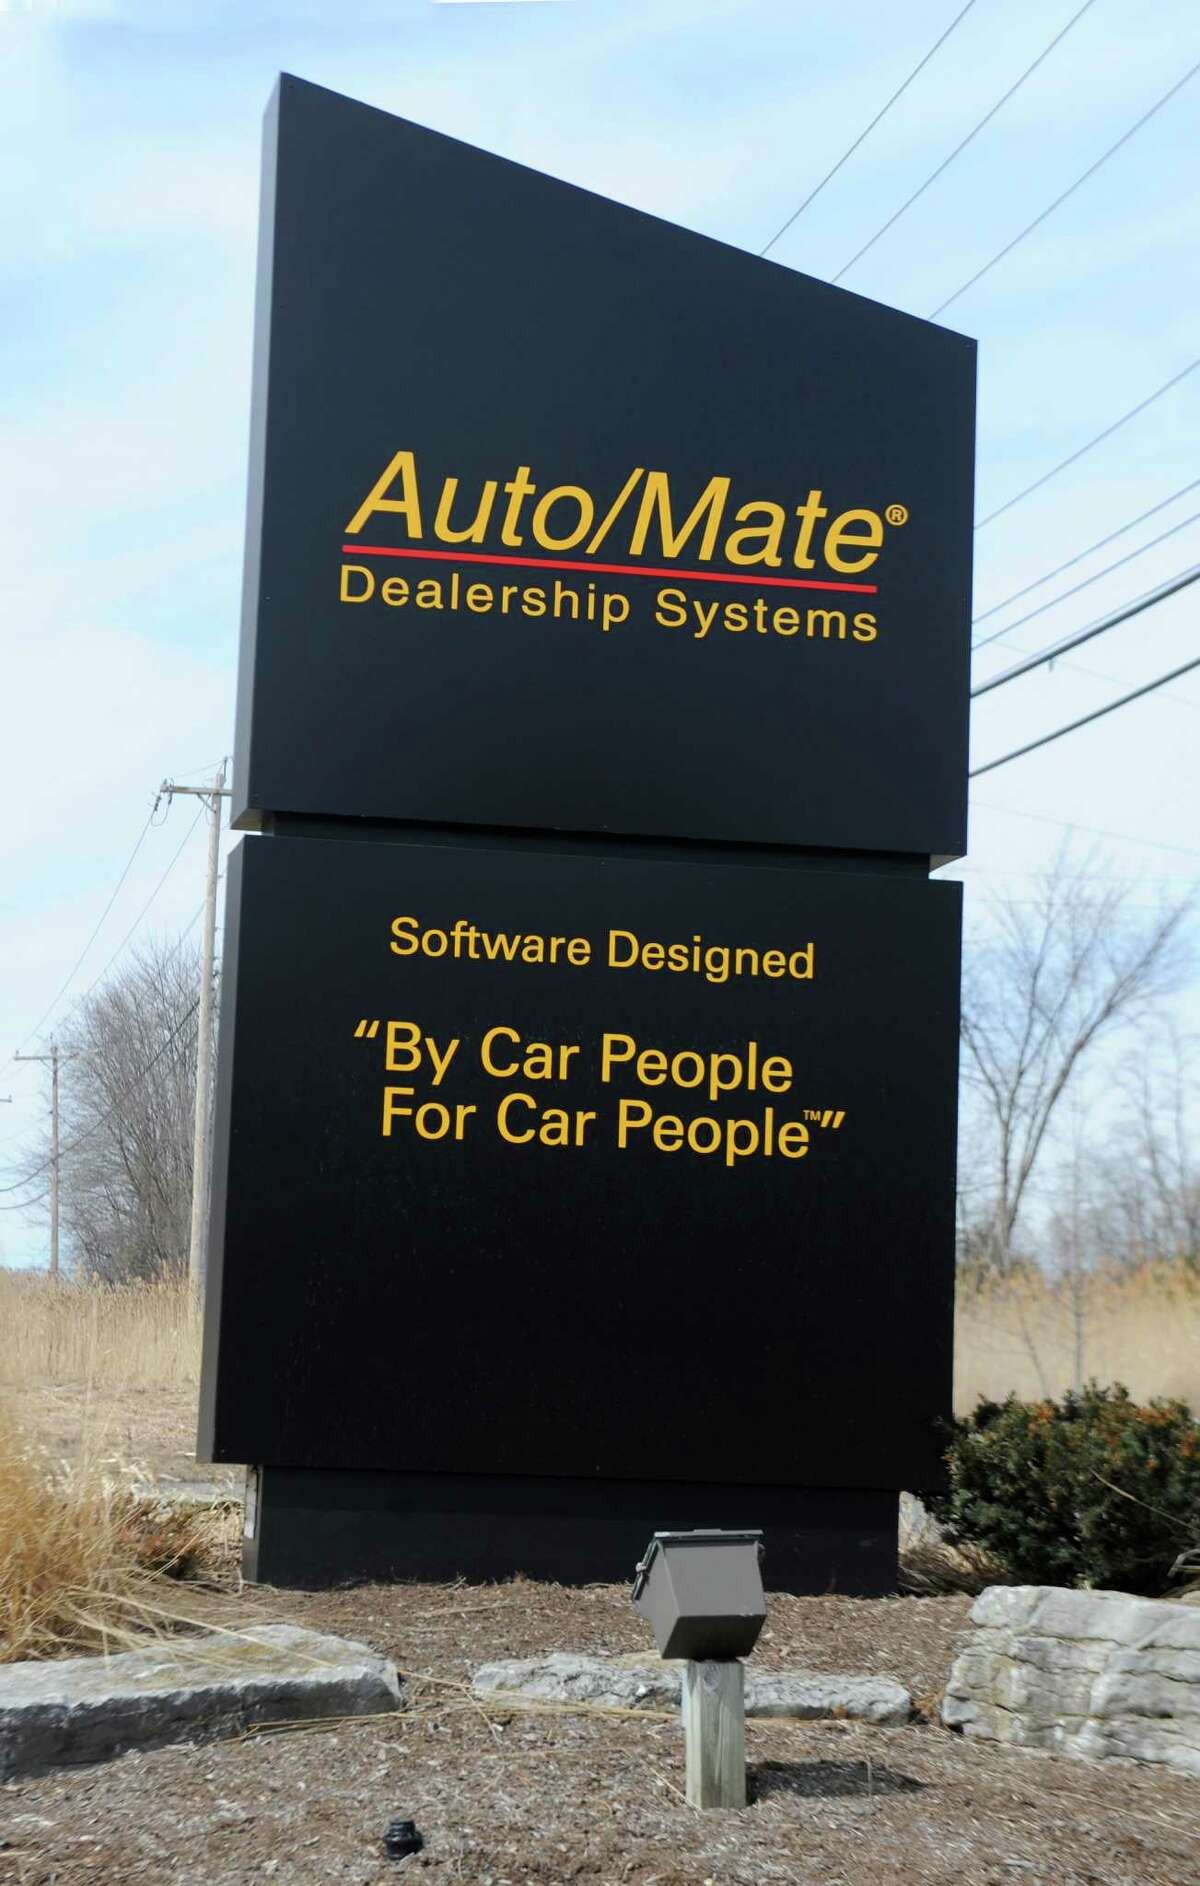 Sign in front of top work place Auto/Mate on Tuesday, March 24, 2015 in Colonie, N.Y. (Lori Van Buren / Times Union)